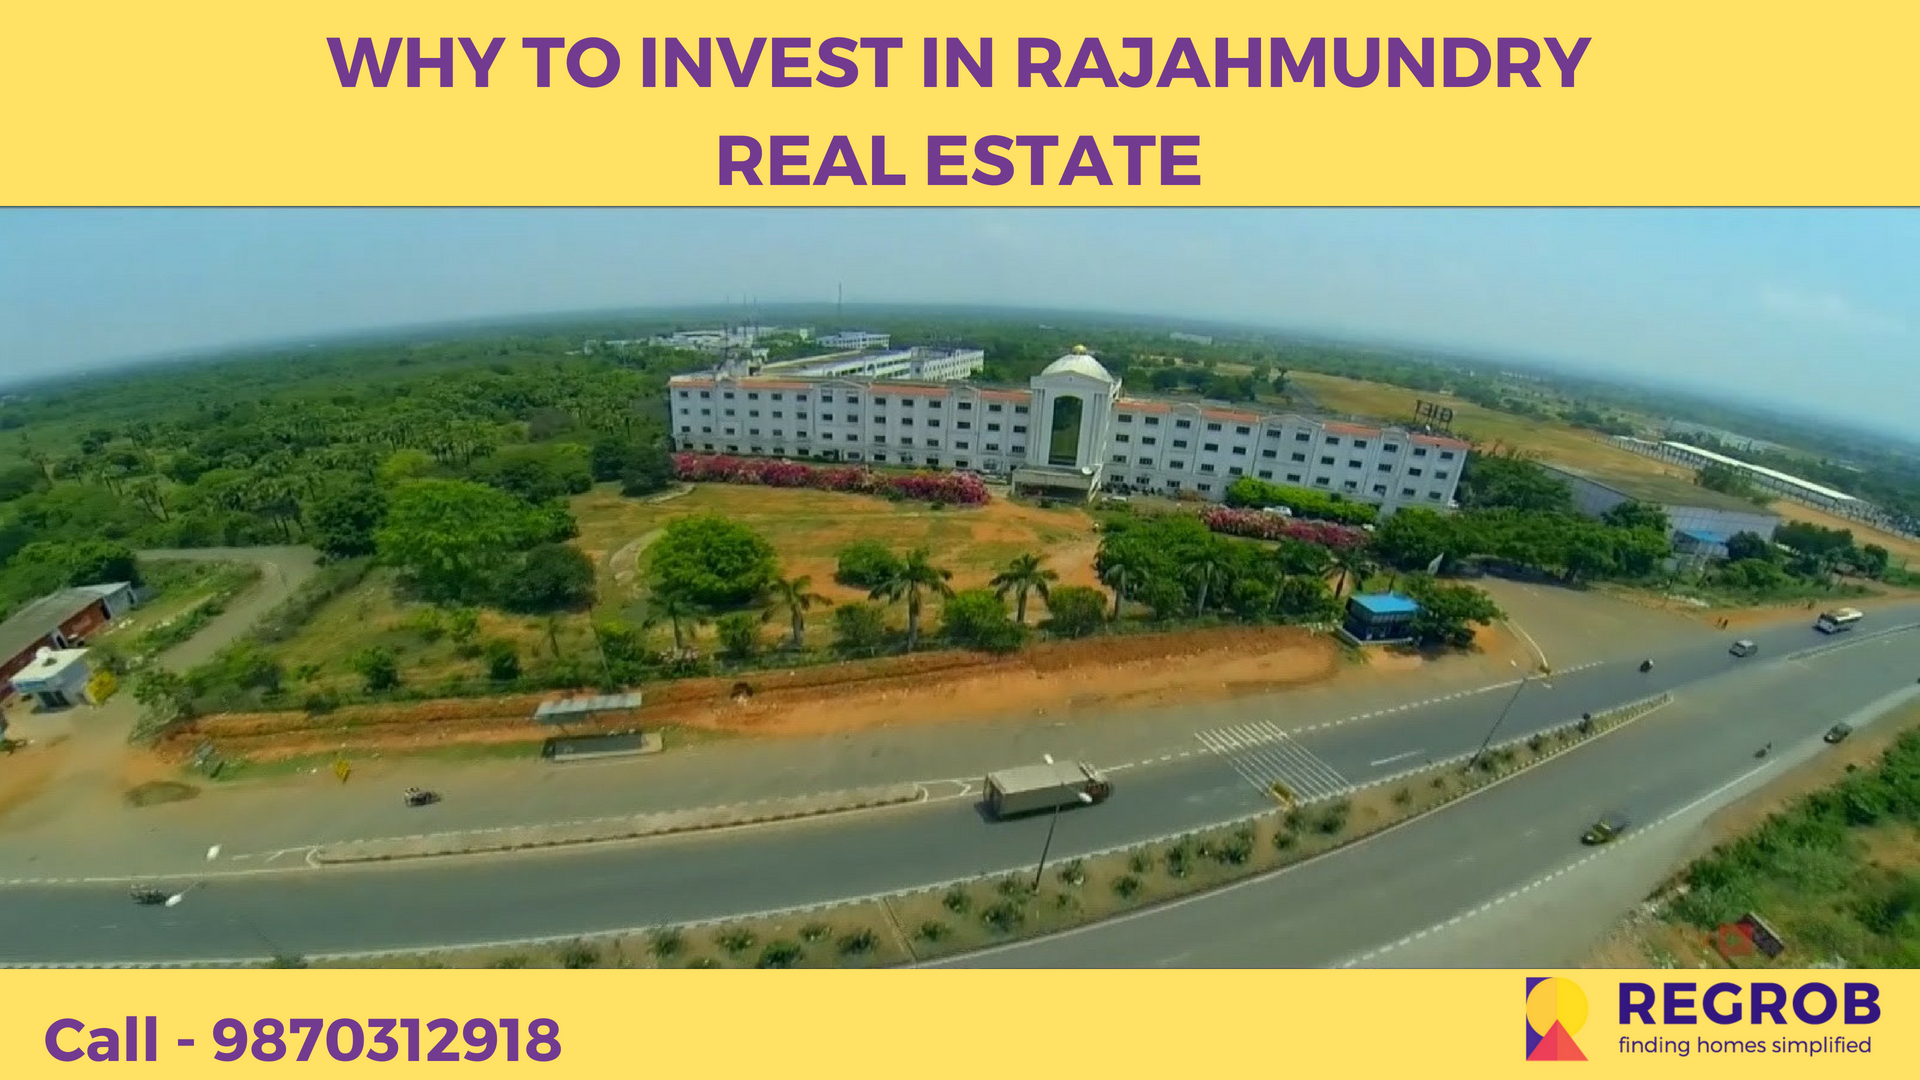 WHY TO INVEST IN RAJAHMUNDRY REAL ESTATE